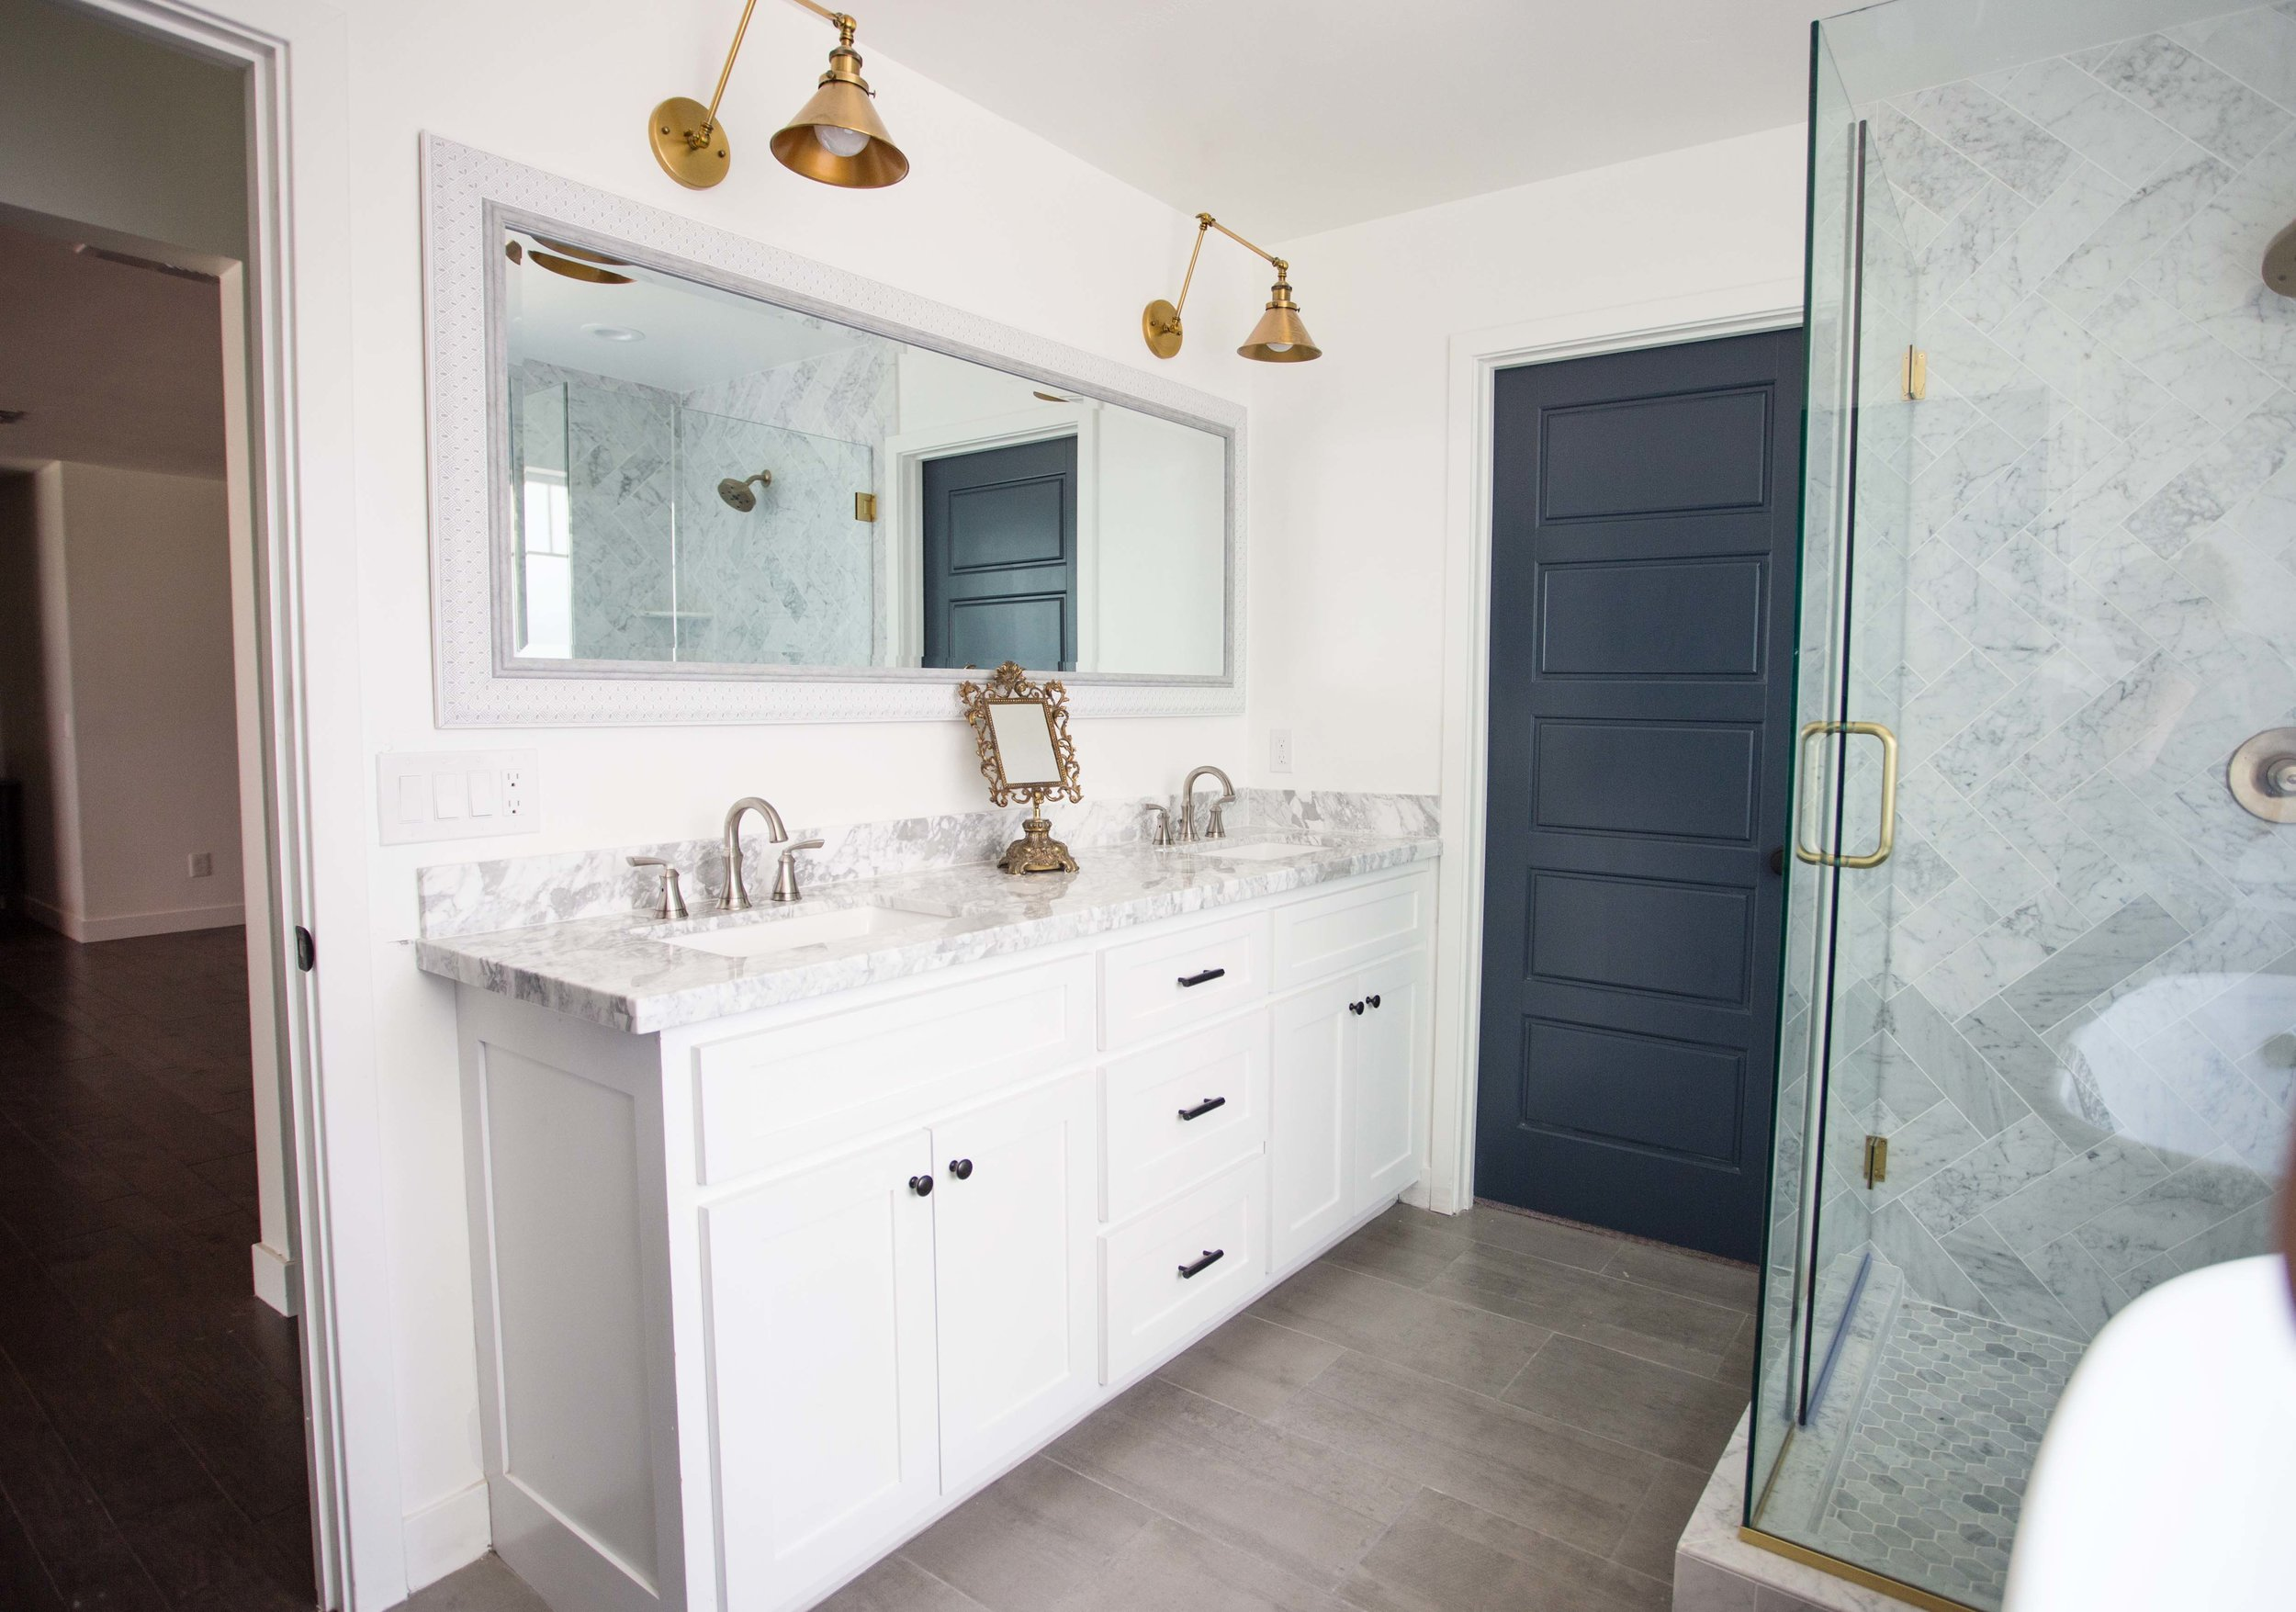 Clarendon Master Bath Vanity with carrara arabescato marble and brass sconces